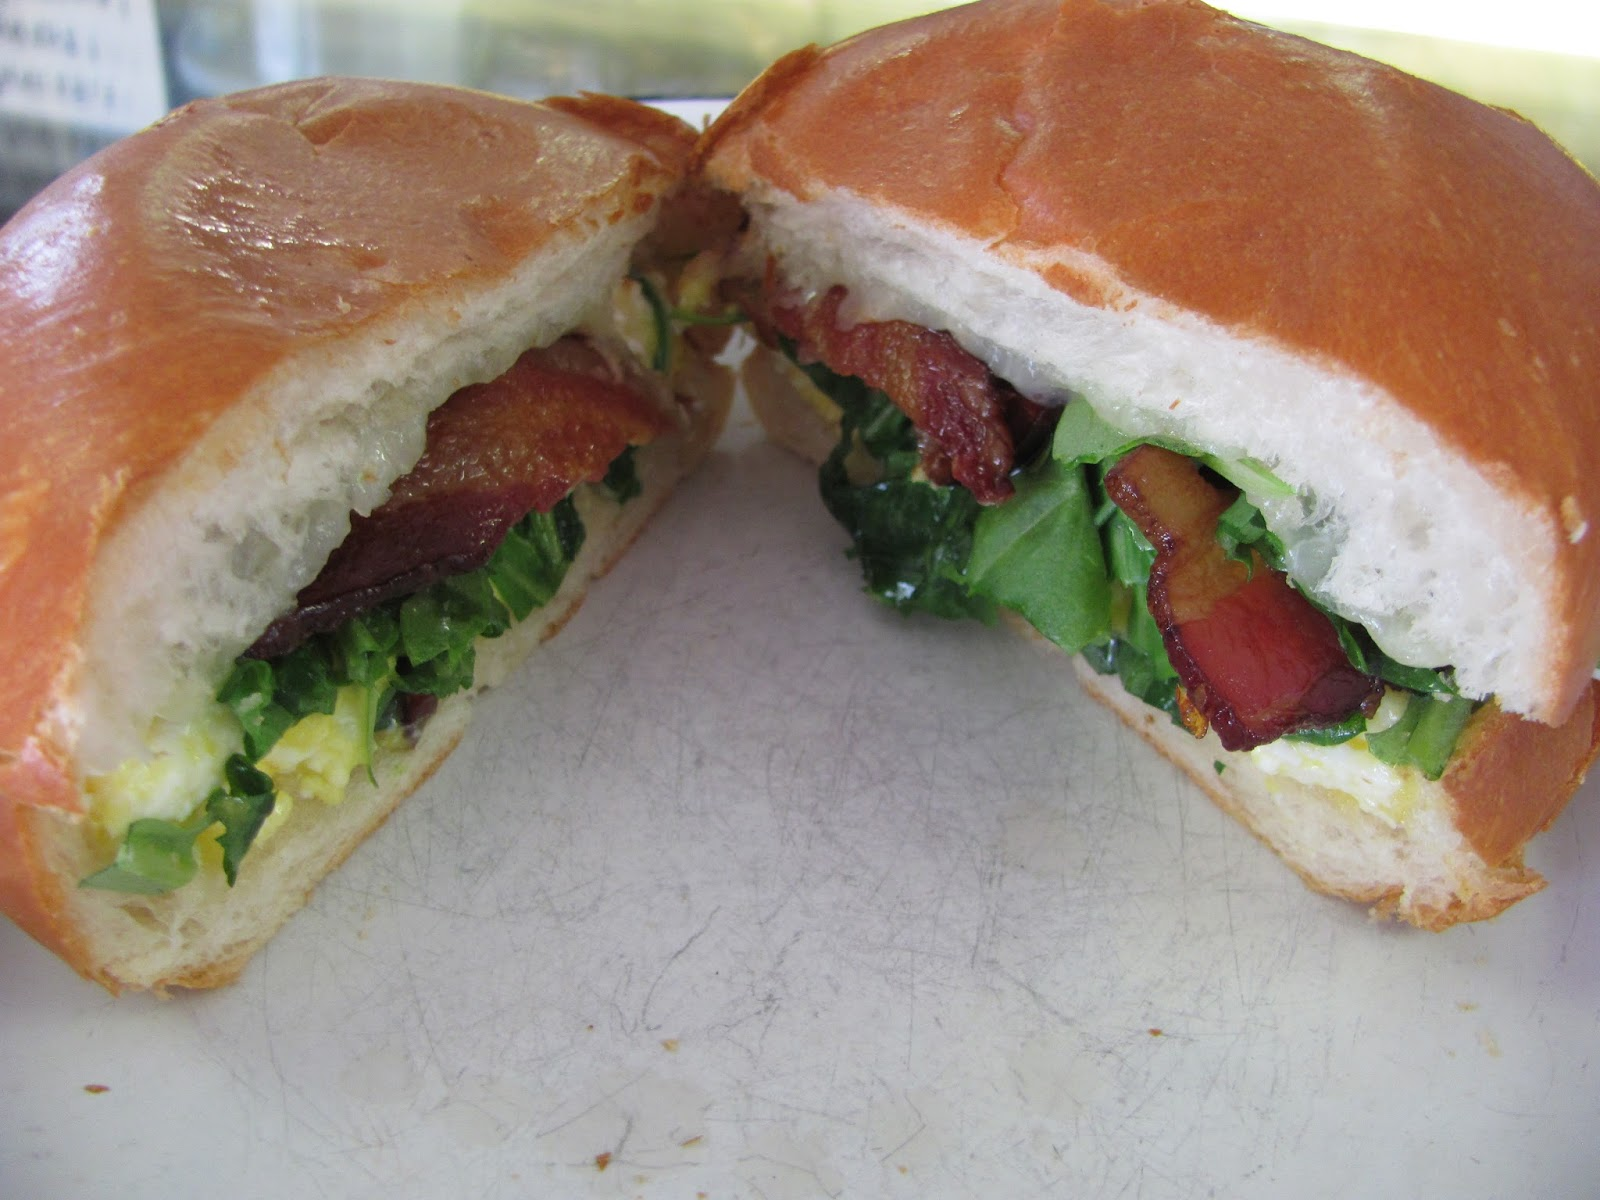 Theyearrounders guide to provincetown june 2015 i had my pop dutch breakfast sandwich with their tasty thick cut bacon nvjuhfo Choice Image